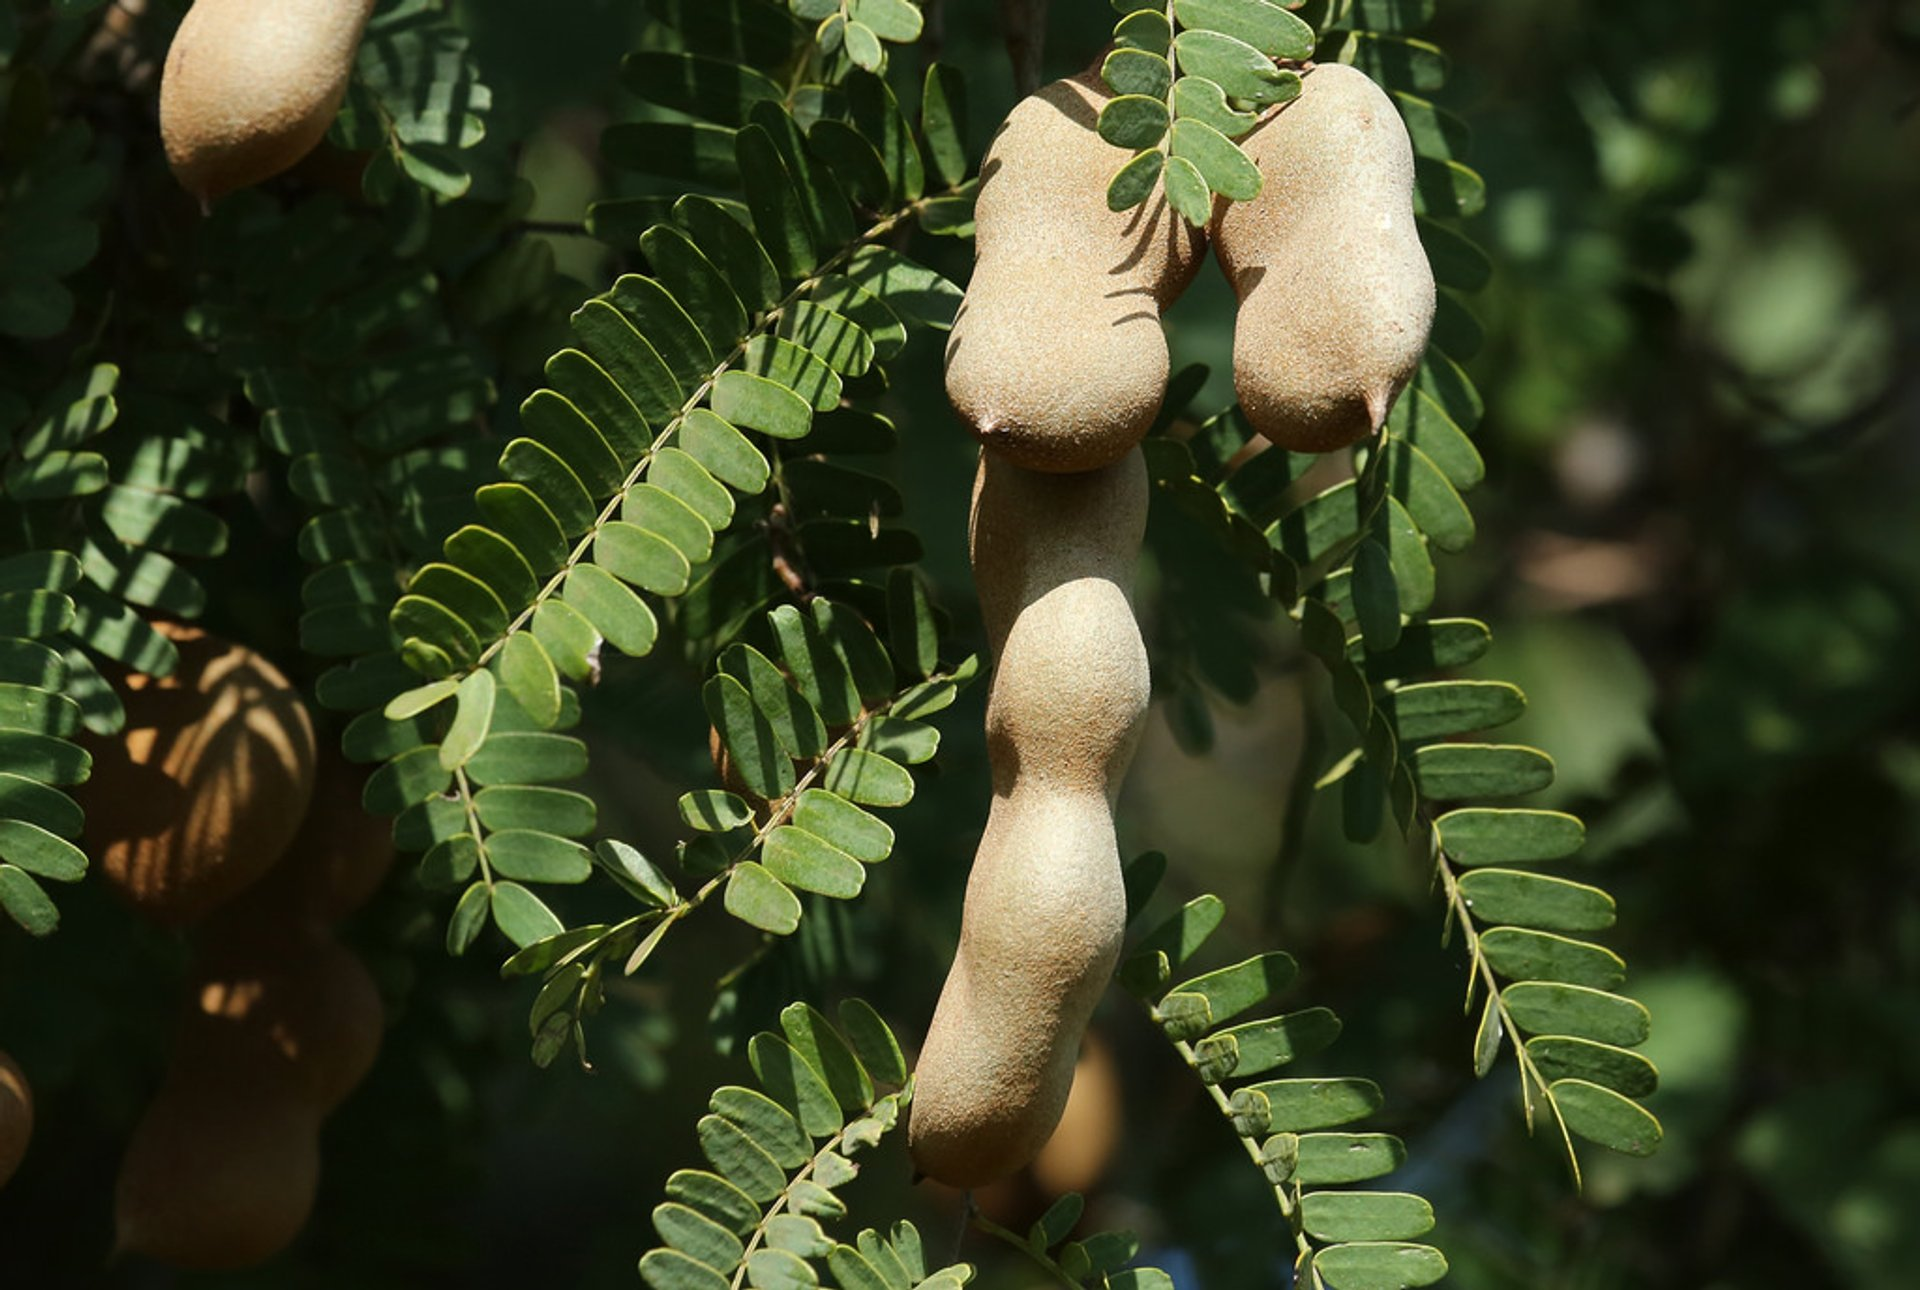 Tamarind Fruit in Costa Rica 2020 - Best Time